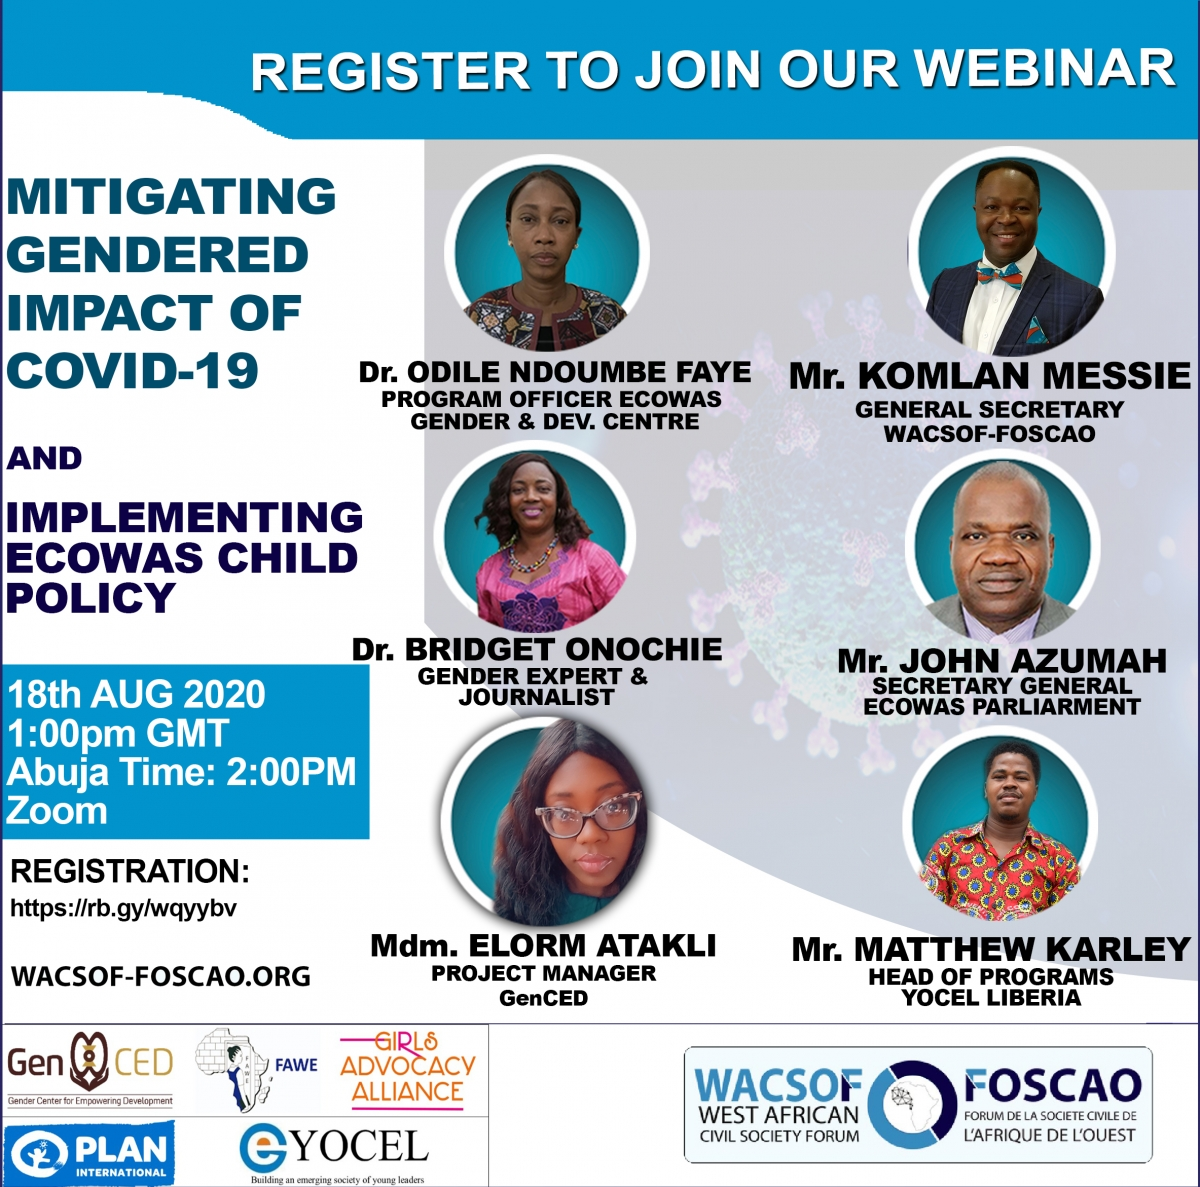 WEBINAR ON MITIGATING THE GENDERED IMPACT OF COVID-19 AND IMPLEMENTING THE ECOWAS CHILD POLICY